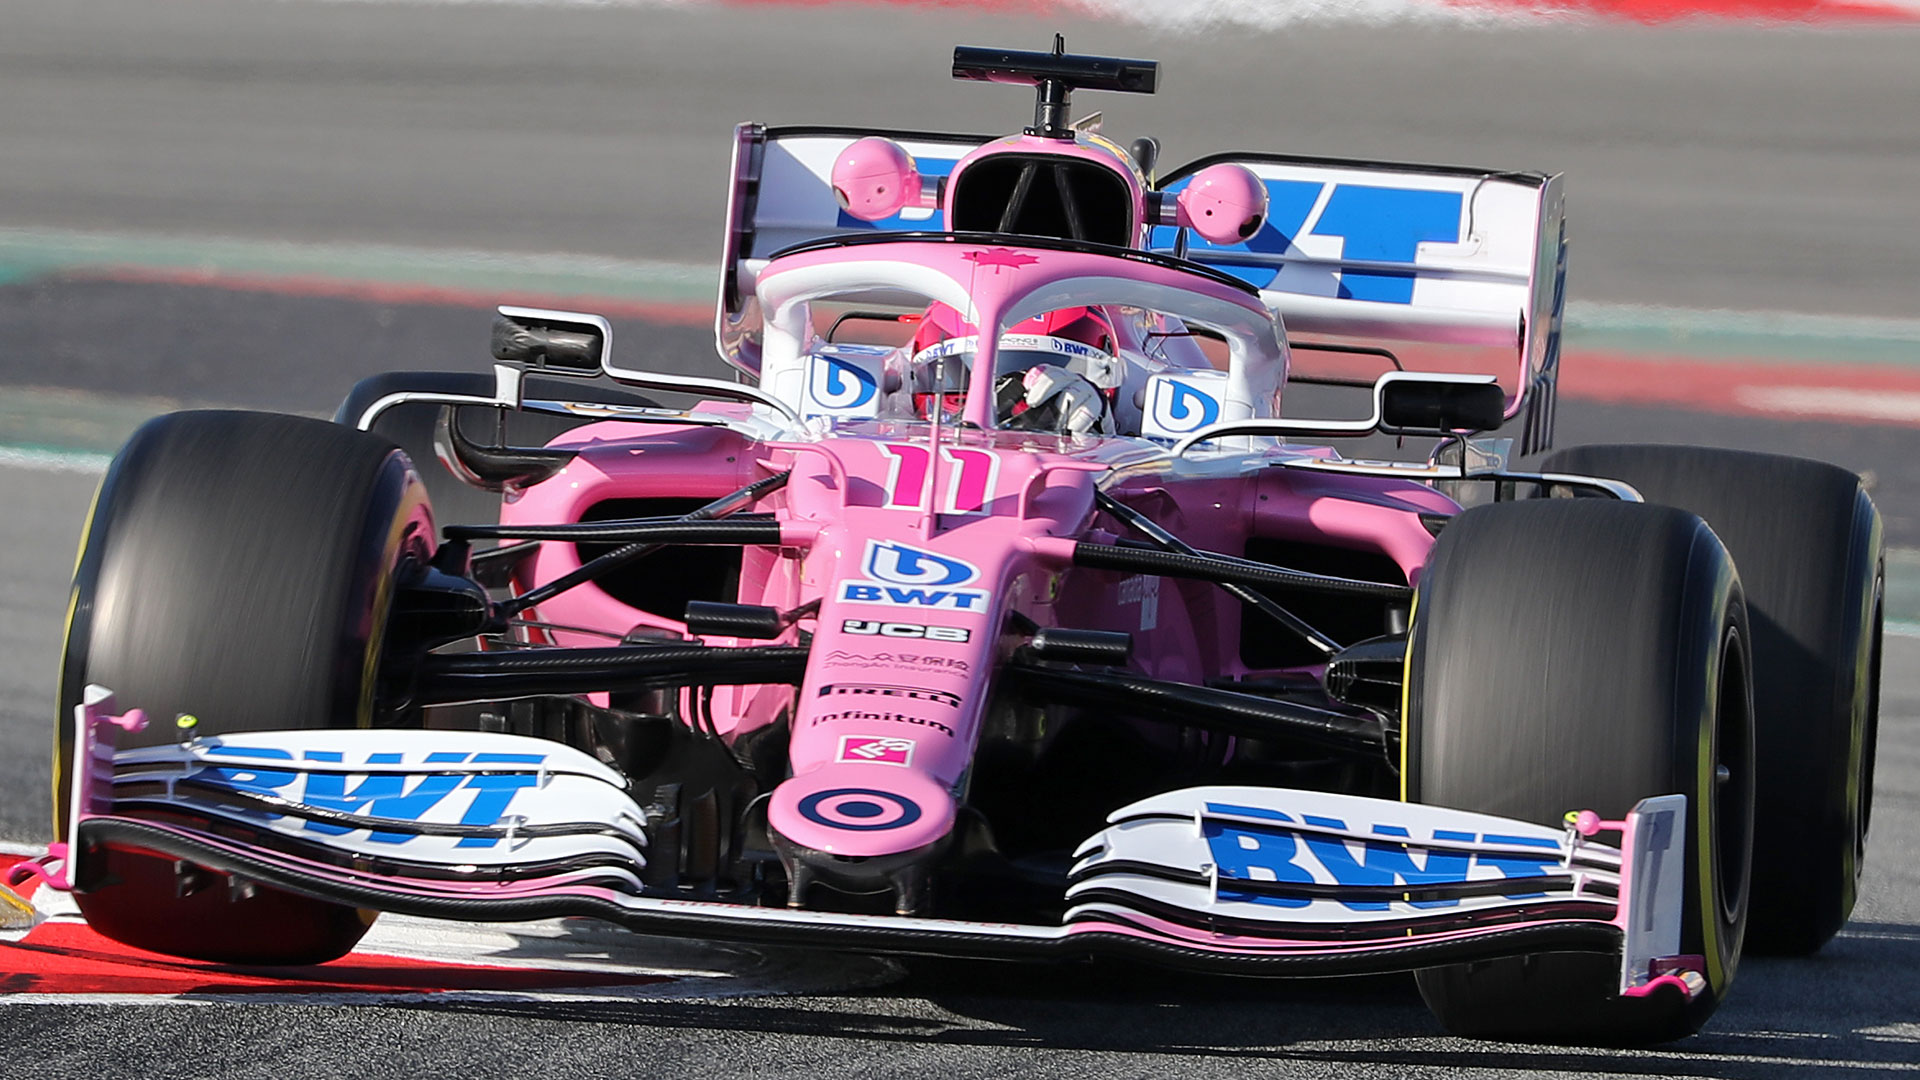 The Pink Mercedes